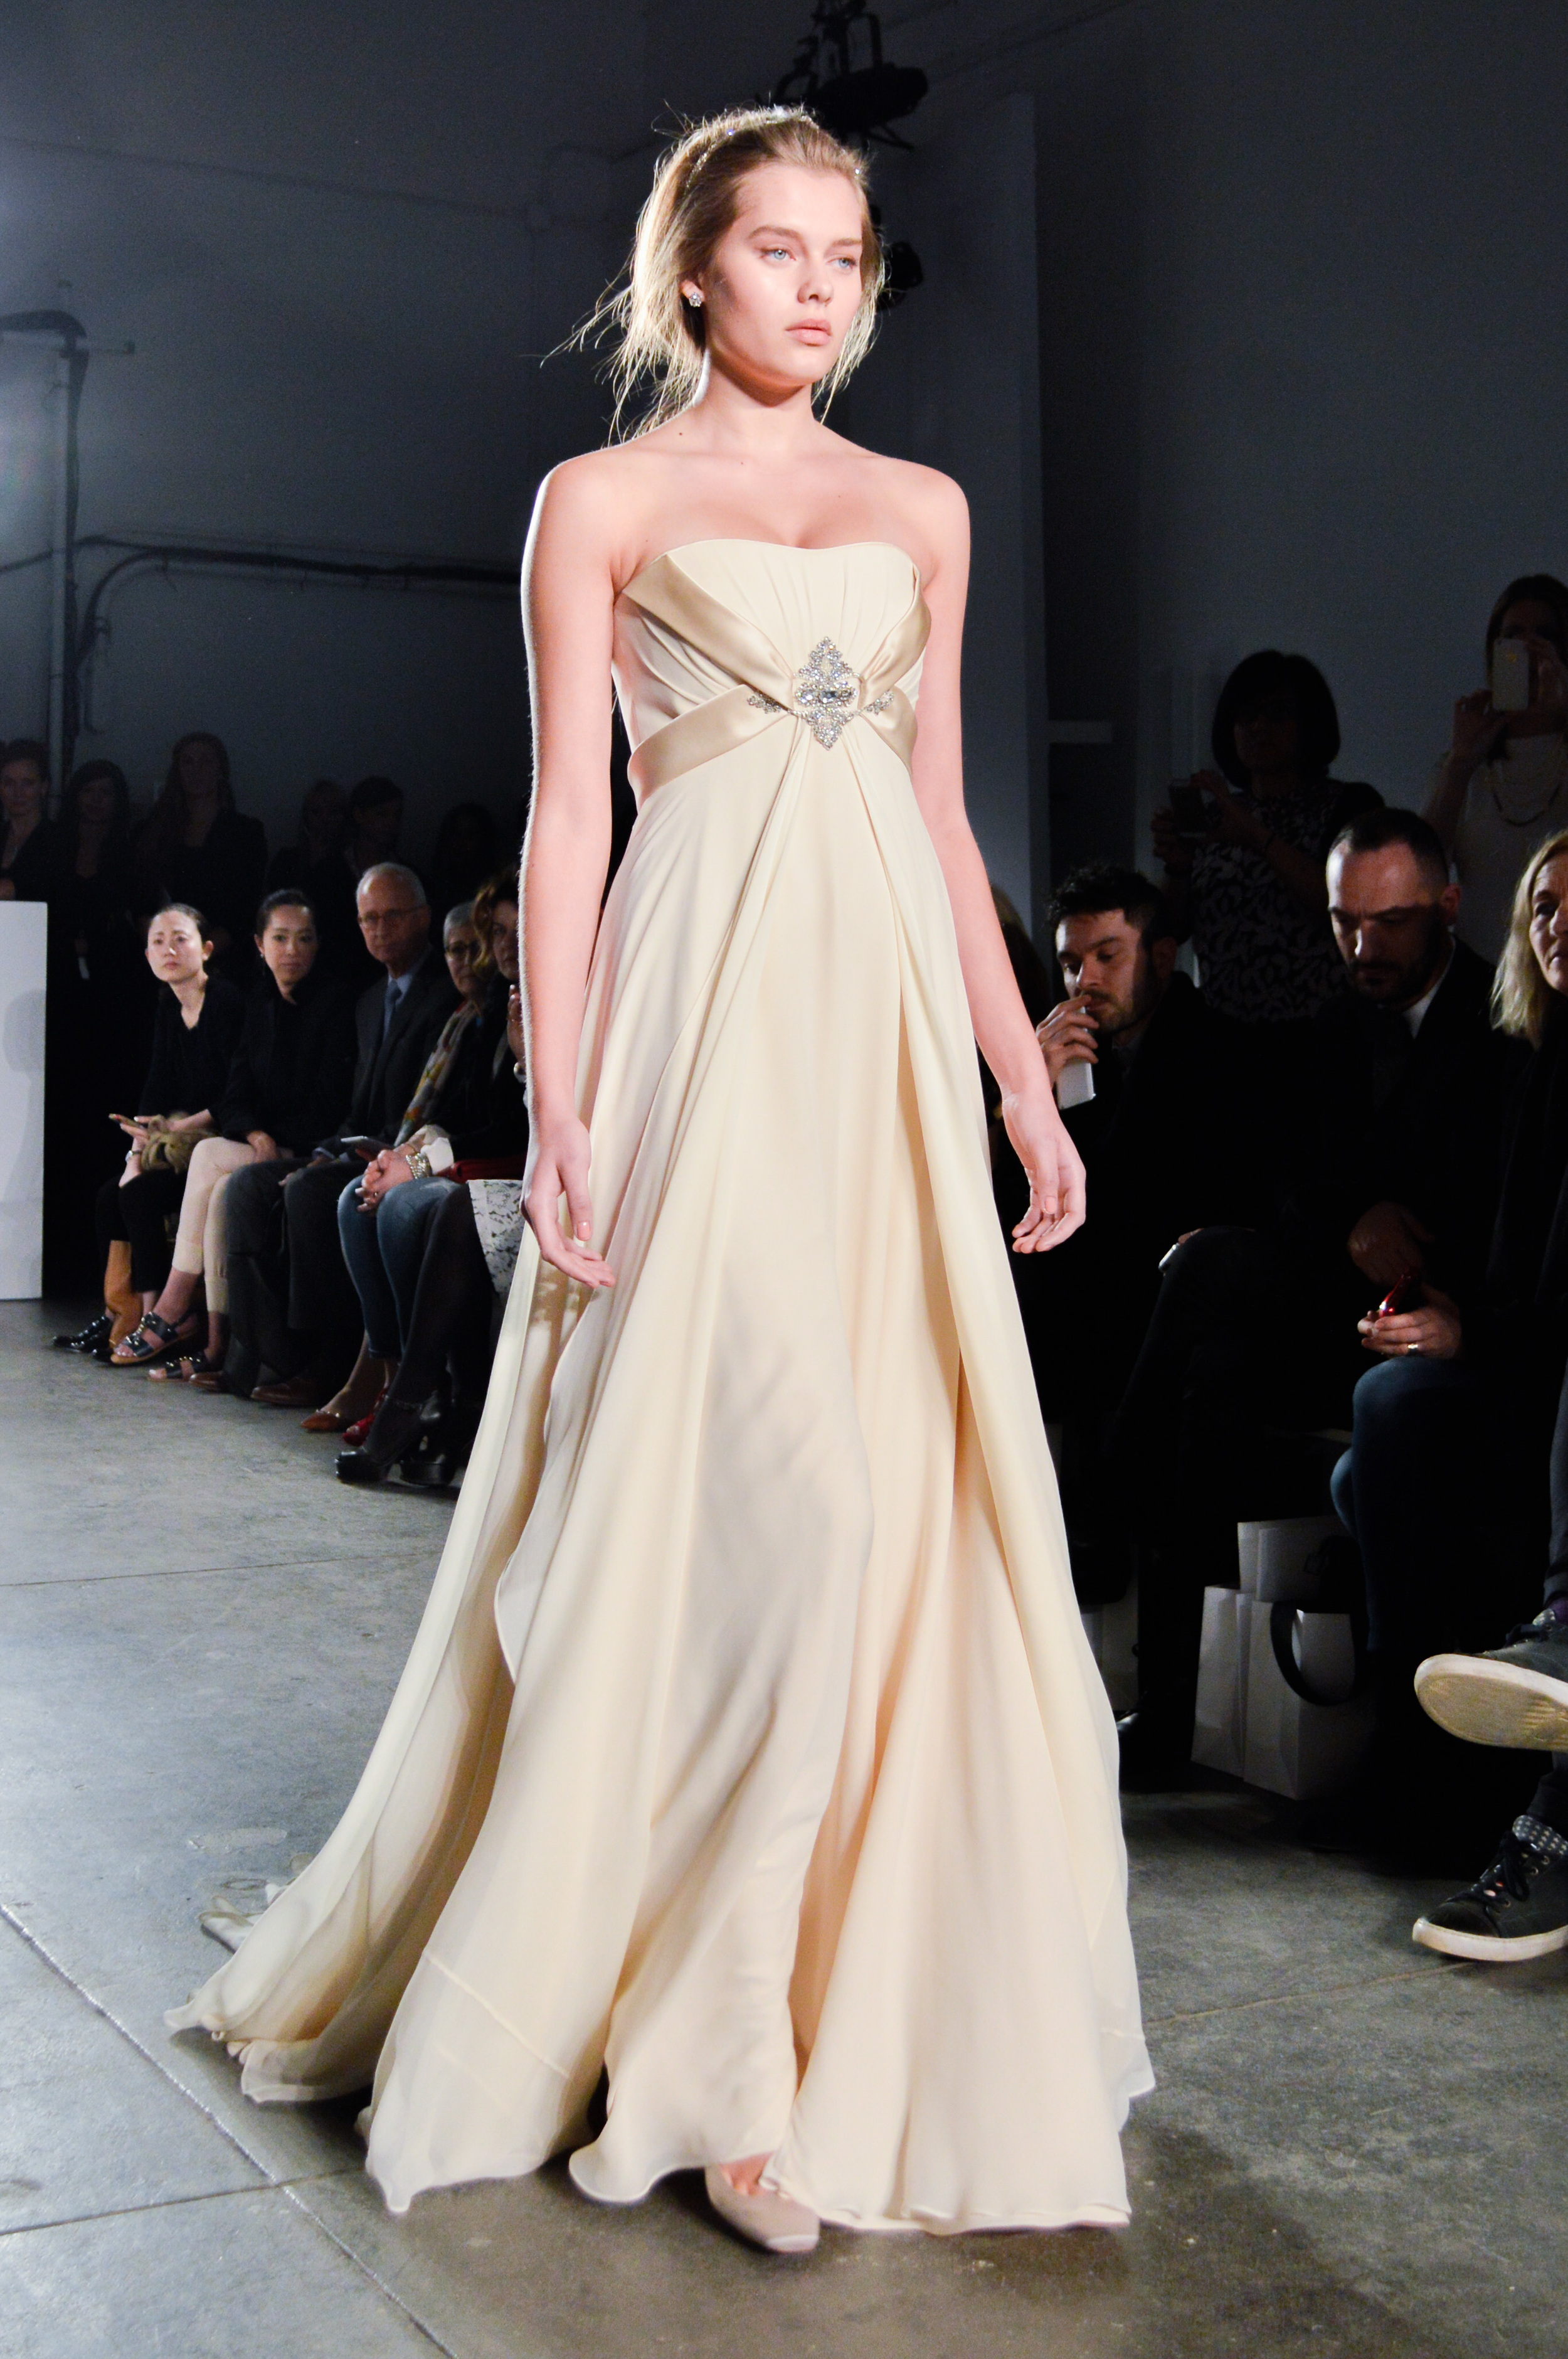 JennyPackham_Bridal Market April 2014-40